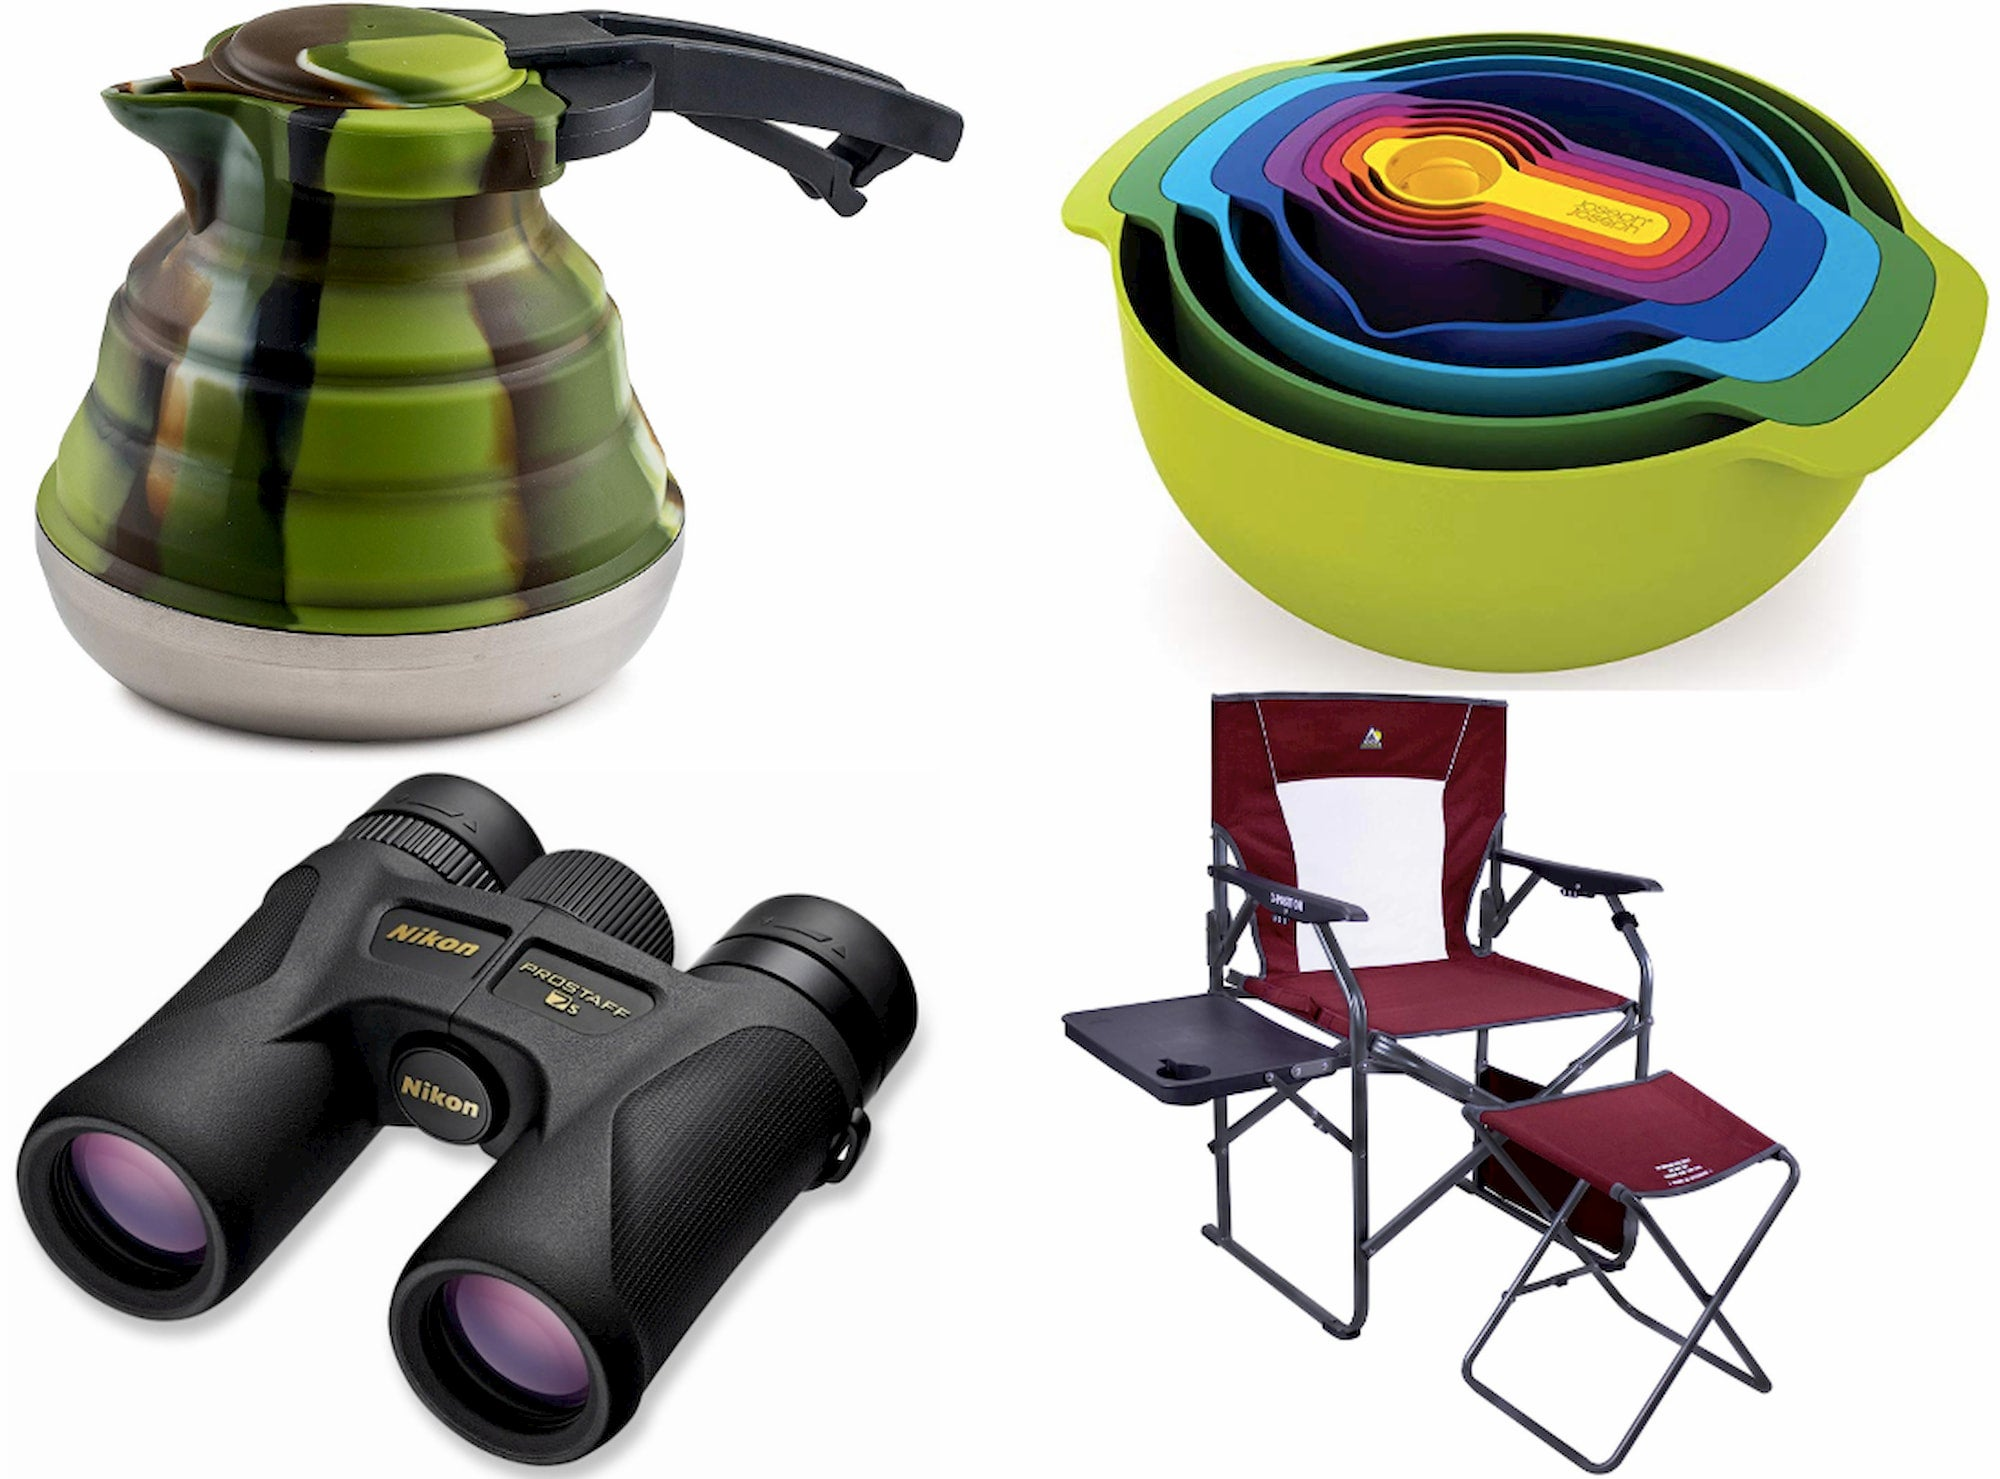 collage of kettle, nesting measuring bowls, binocular, and a camp chair